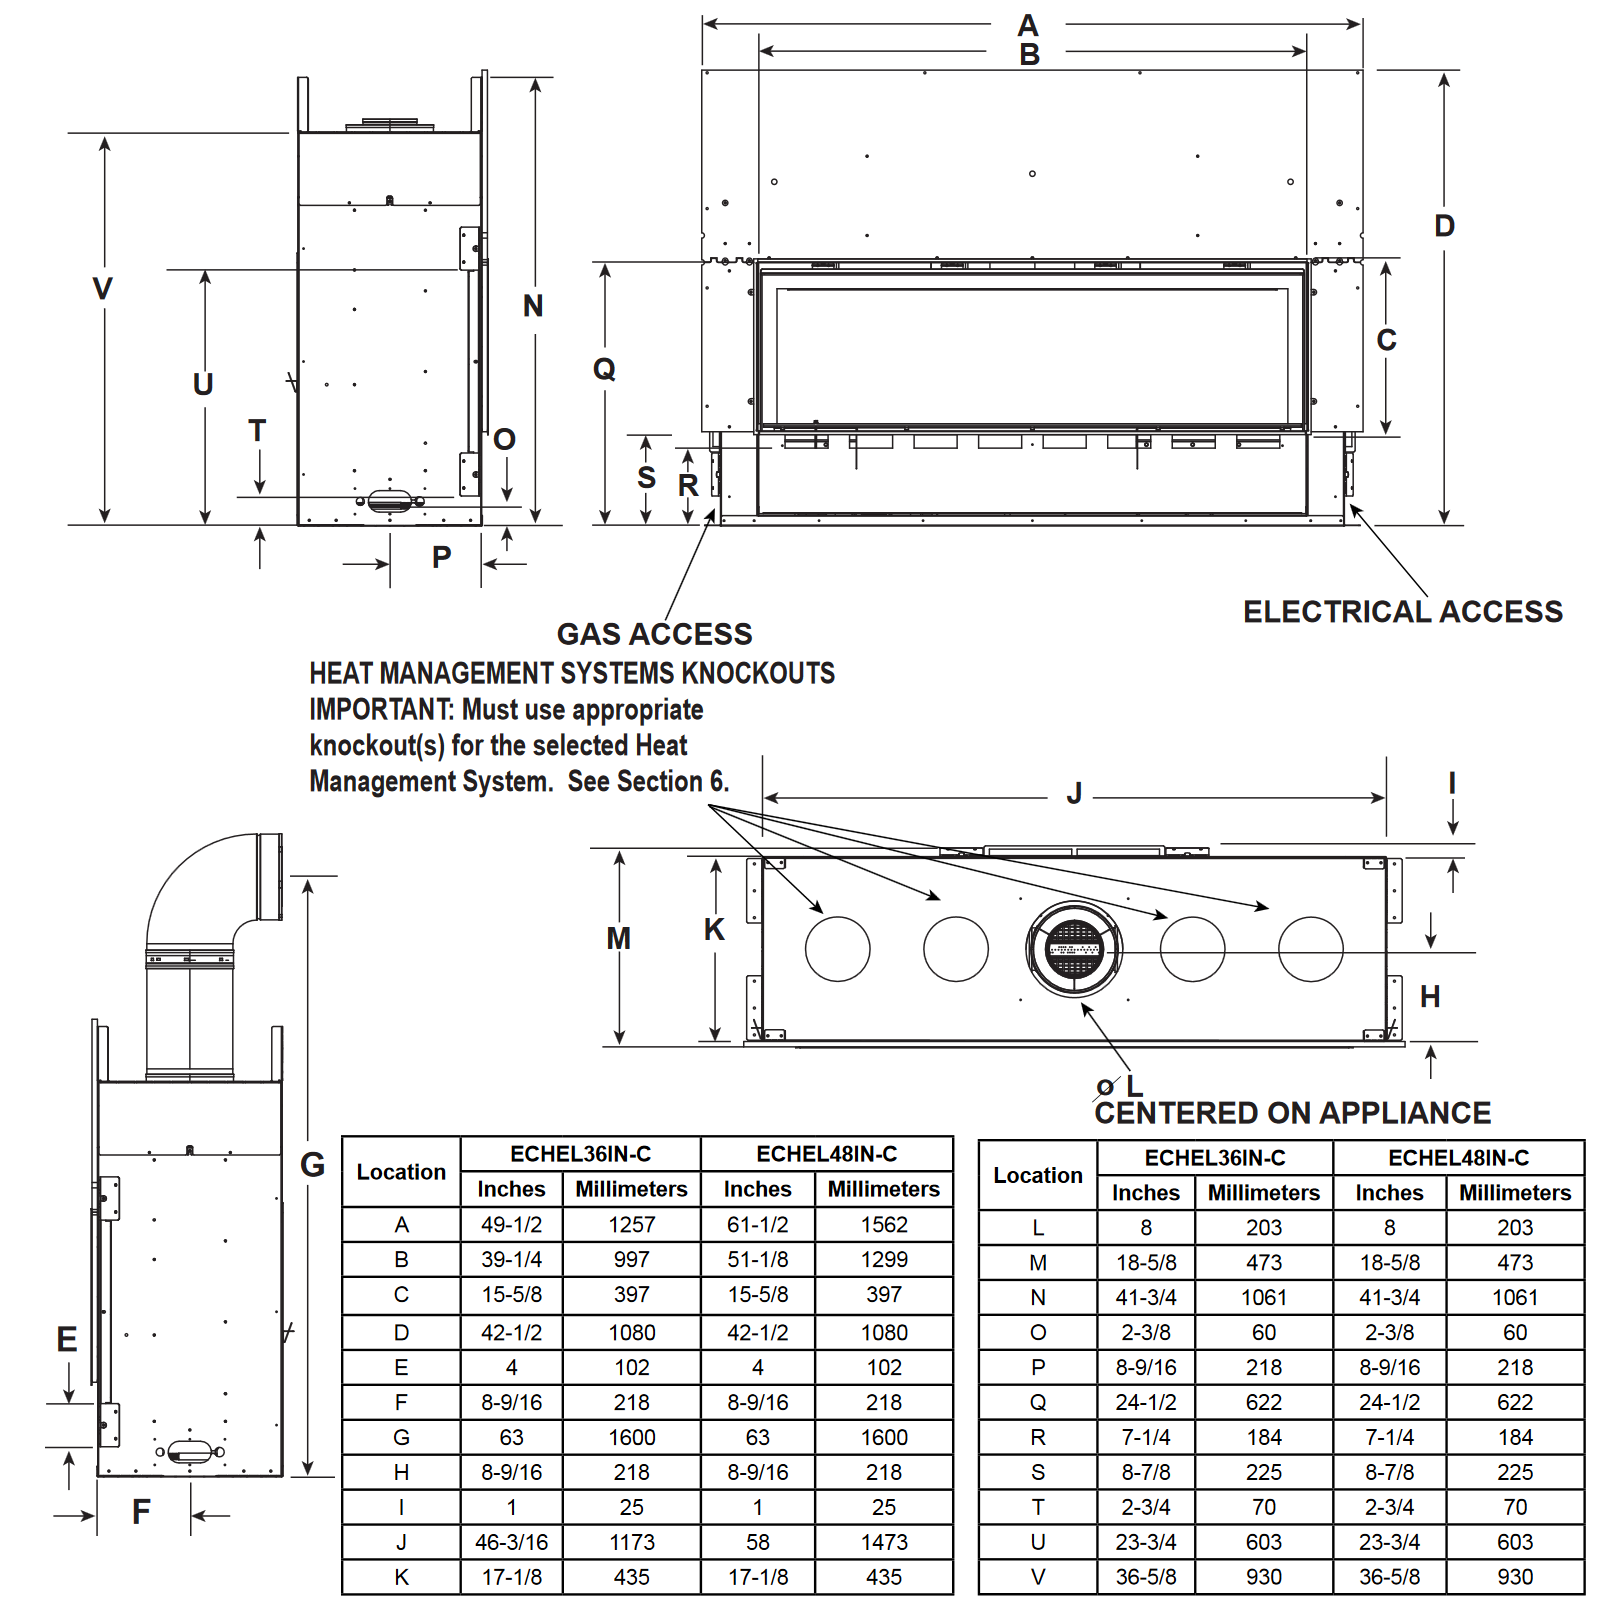 ECHEL48 Technical Drawing 1